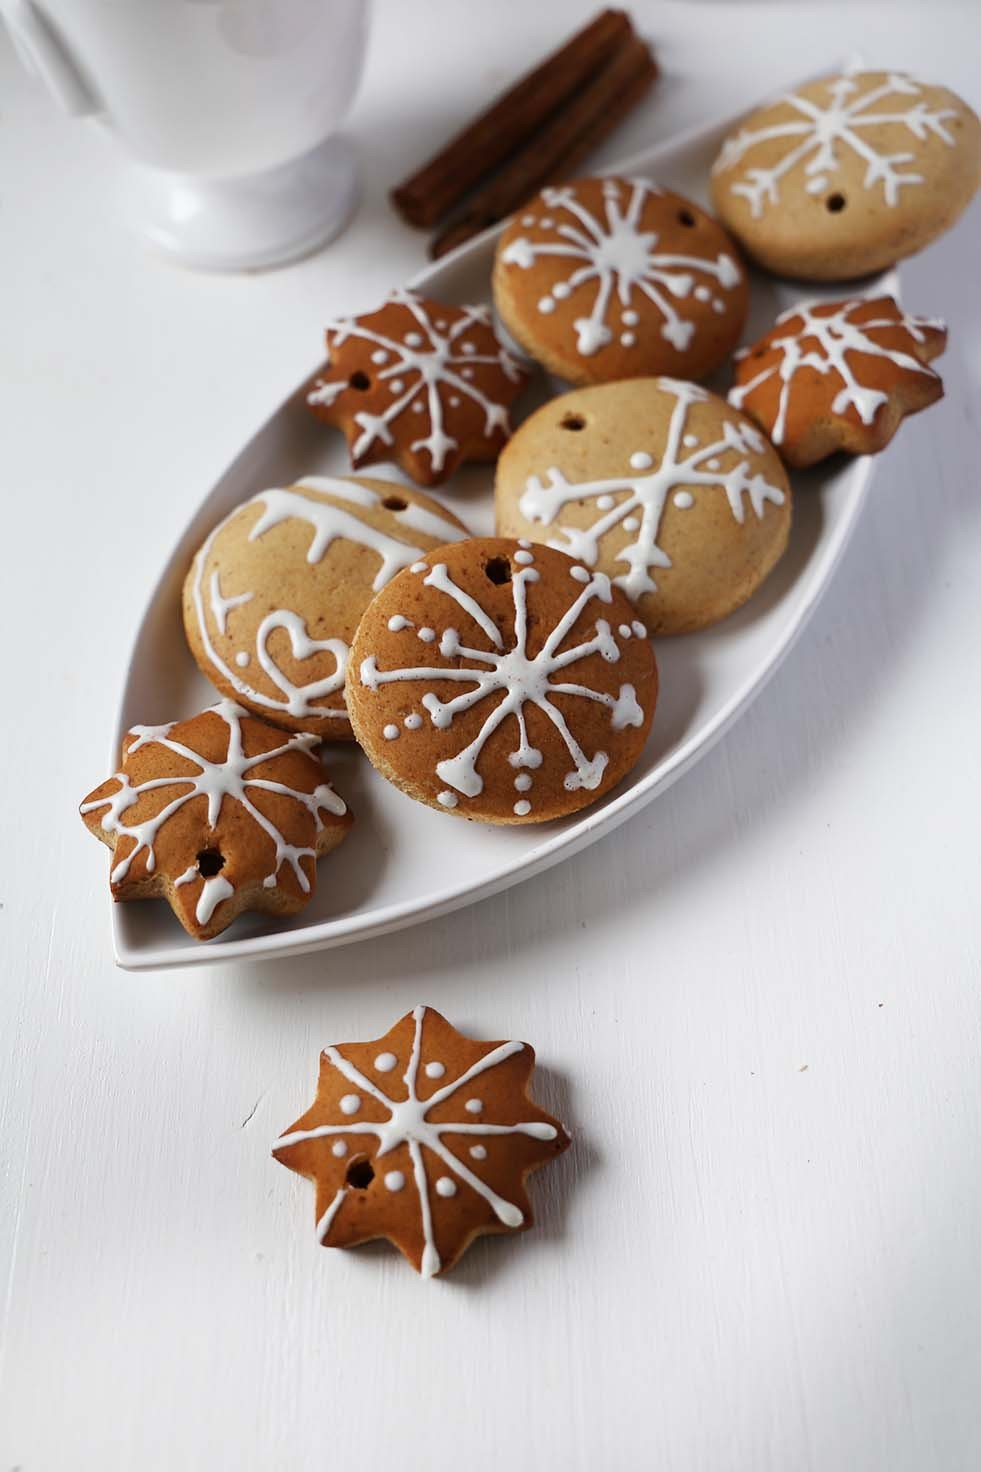 Vegan & Gluten-Free Gingerbread Cookies by Lara of Vanilla Crunnch